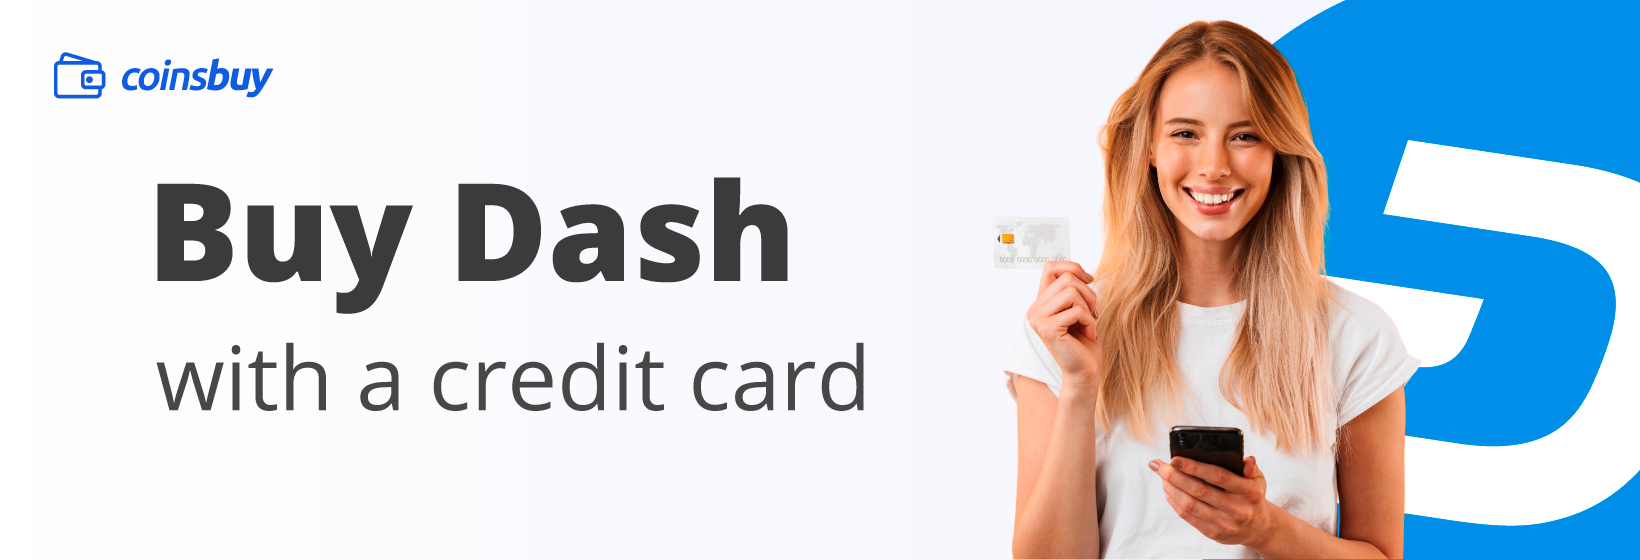 Buy Dash with credit card